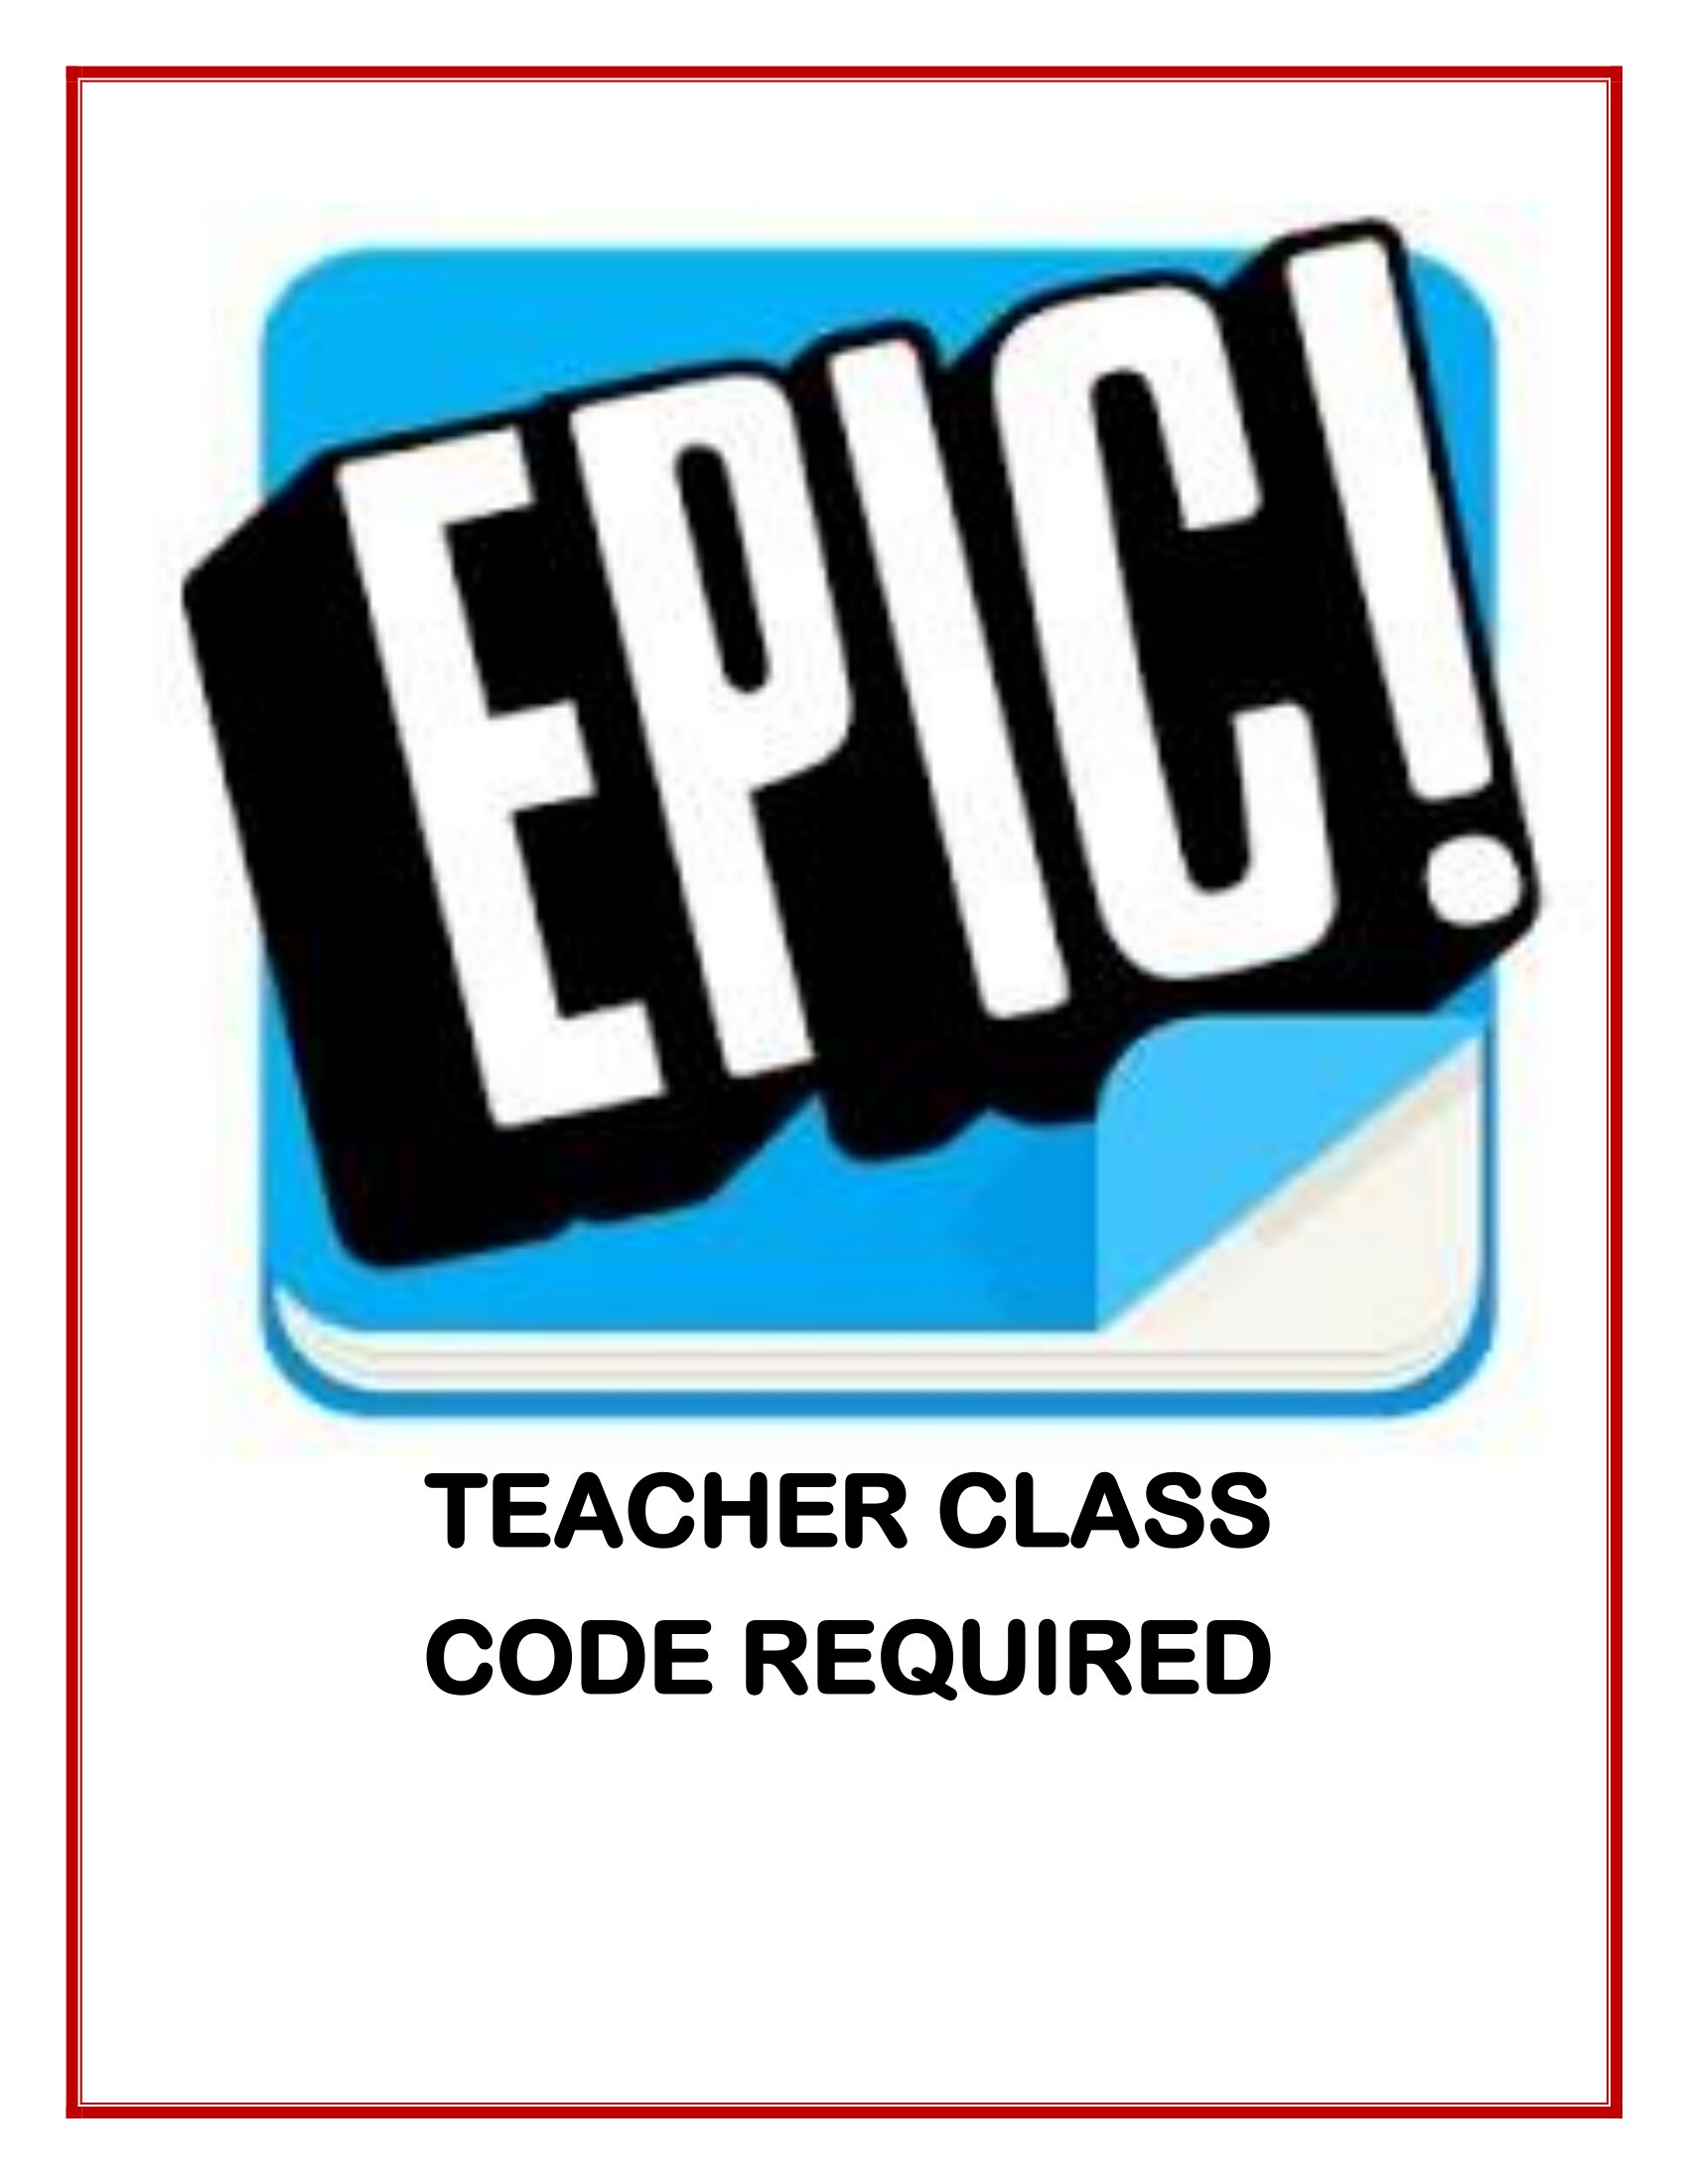 EPIC TEACHER CLASS CODE REQUIRED